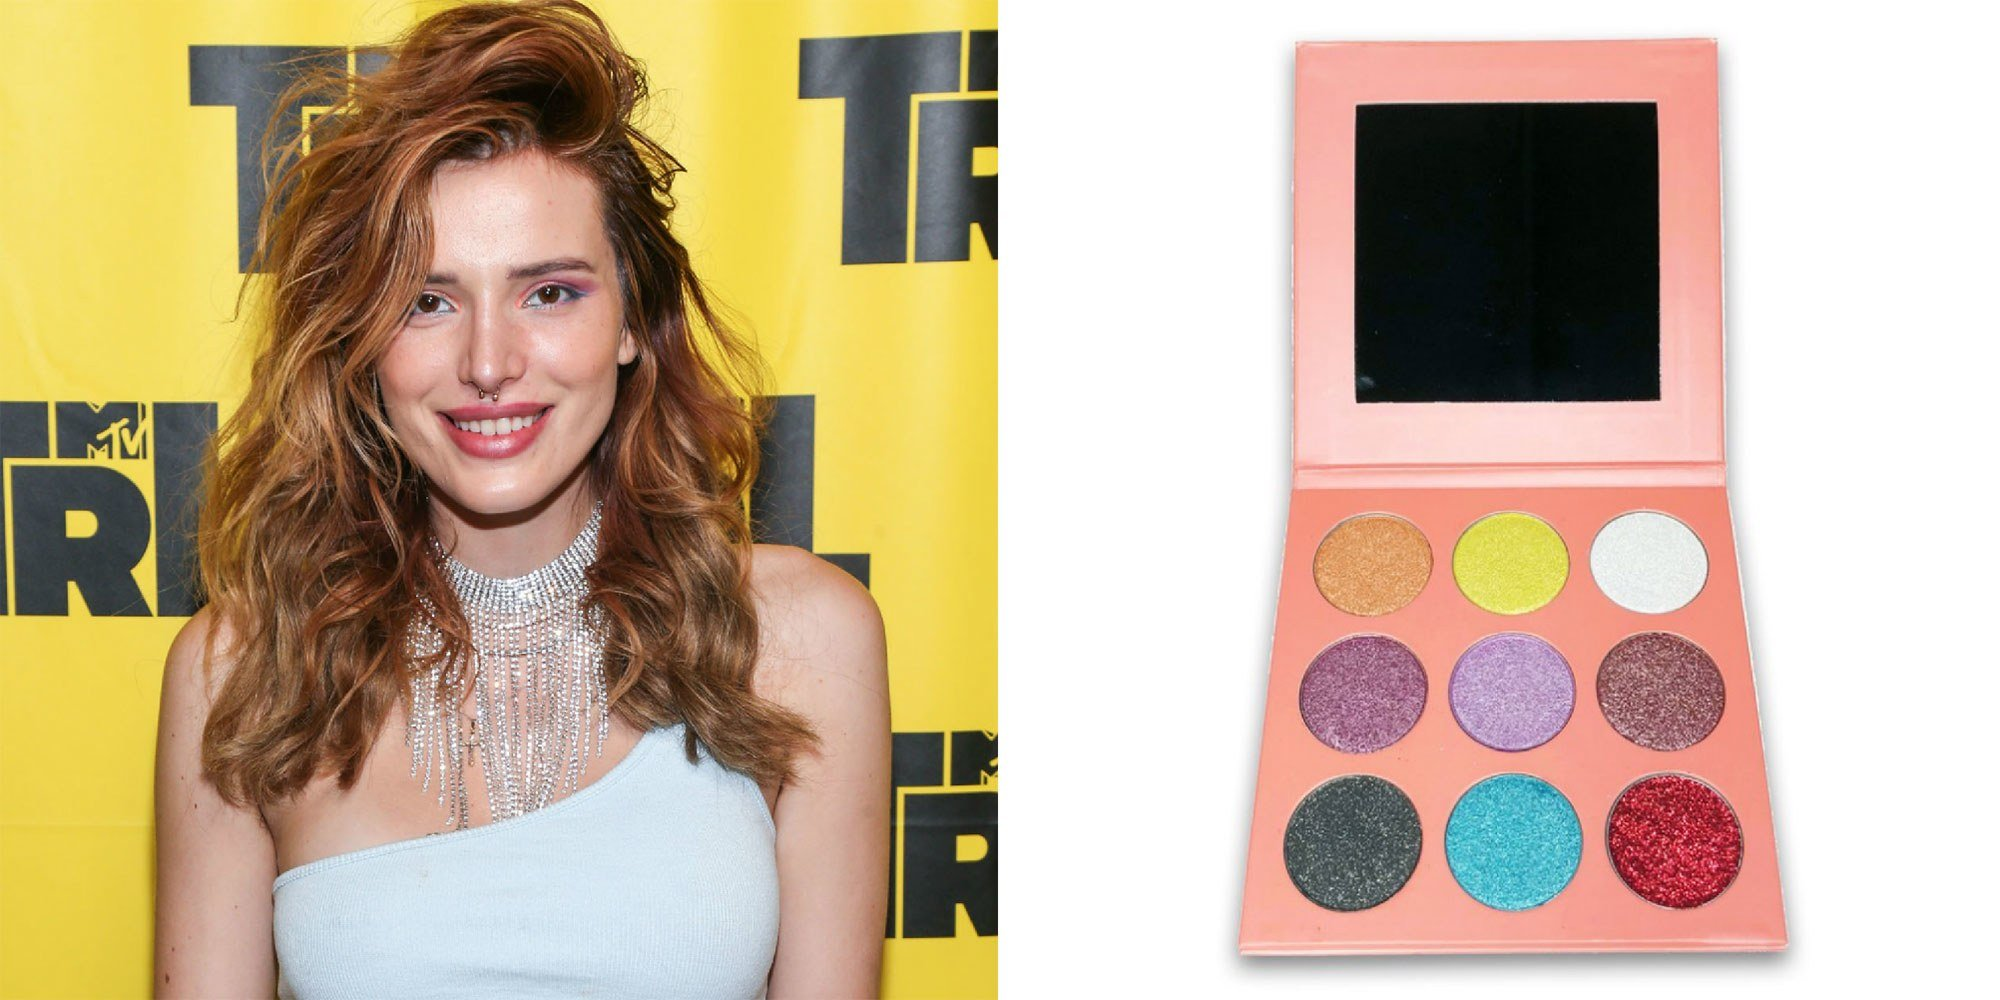 Bella Thorne Faces Backlash Over Her New Makeup Line Bella Thorne Faces Backlash Over Her New Makeup Line new pics